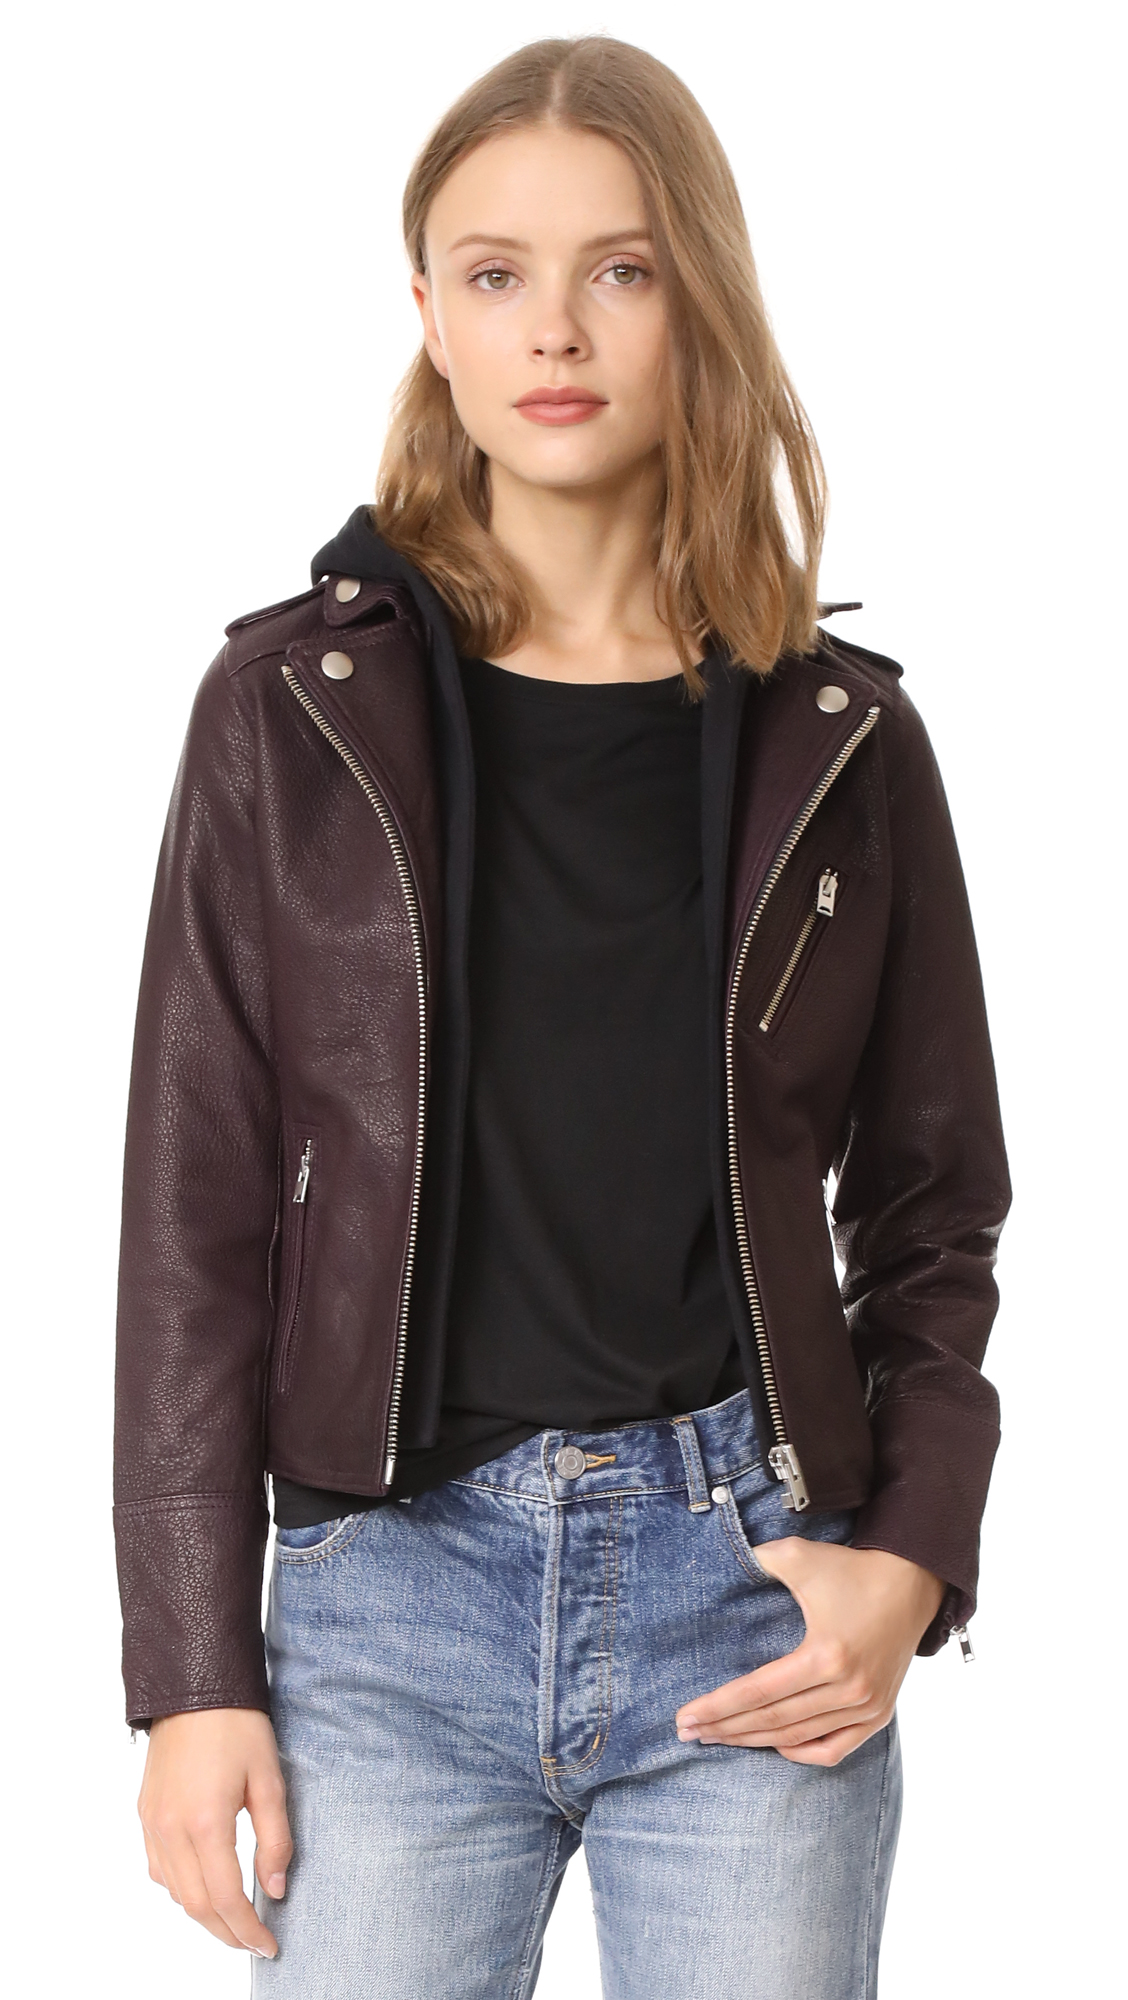 Doma Hooded Leather Jacket - Grappe